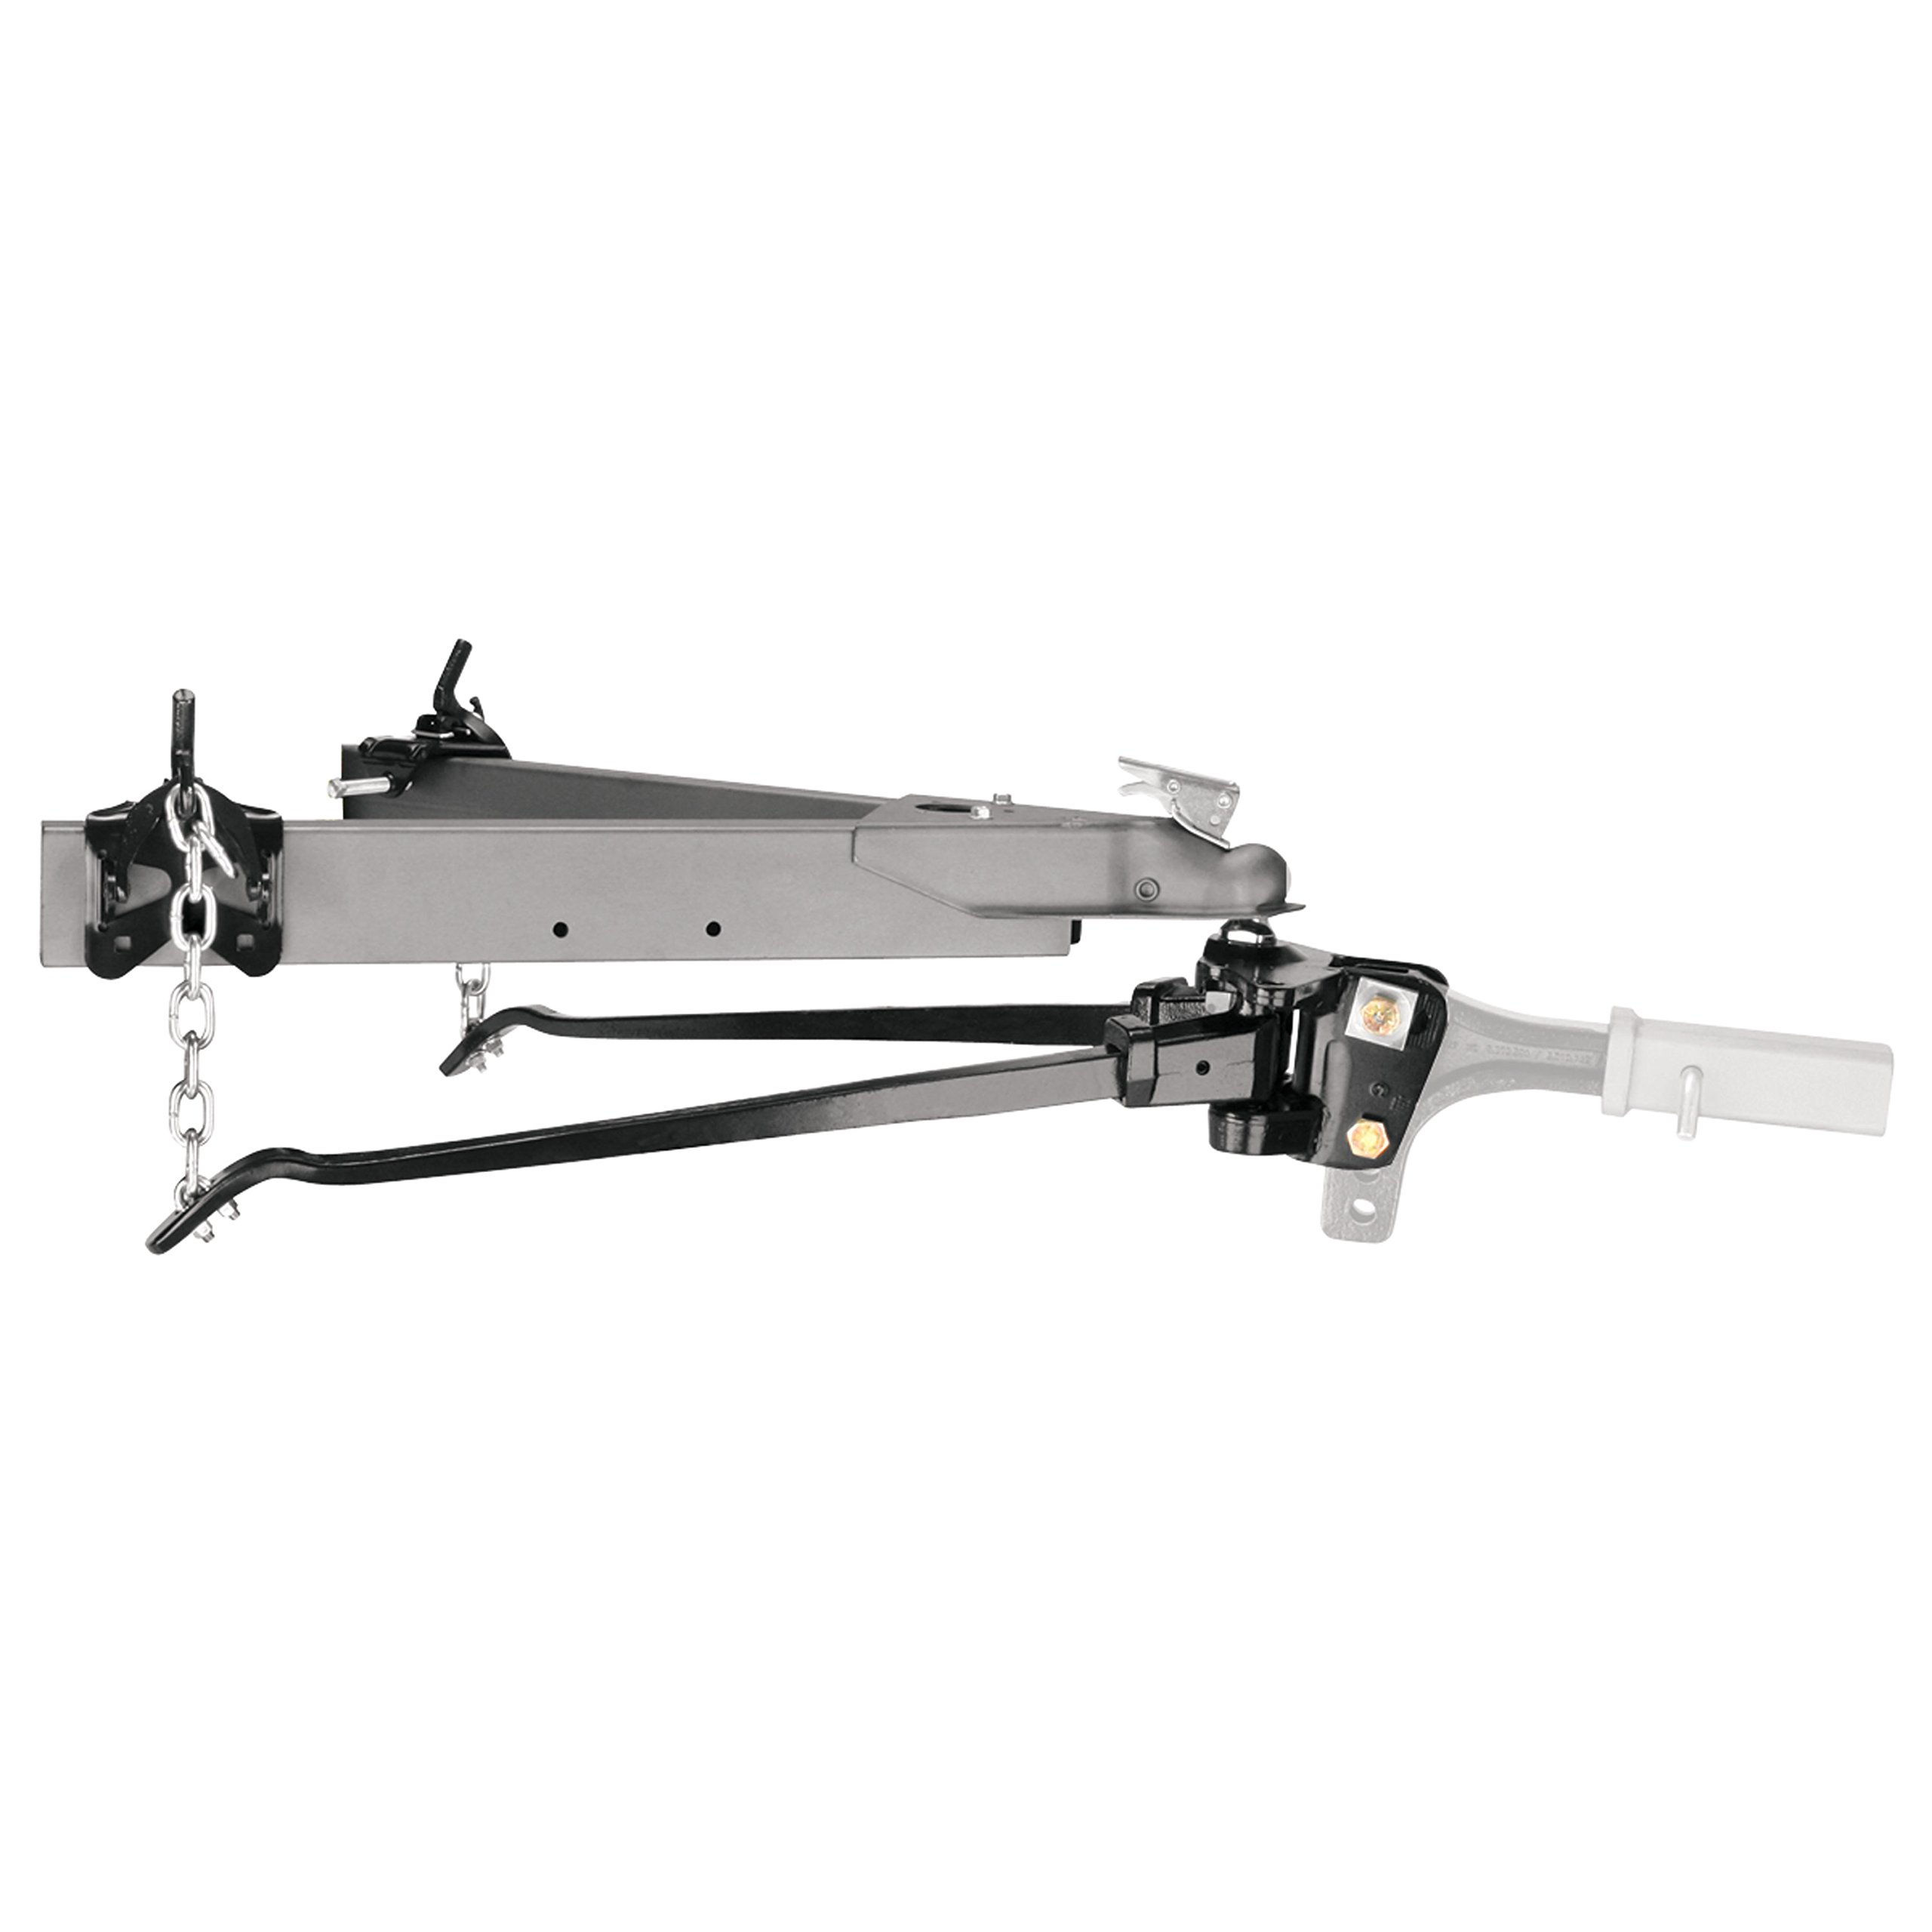 Reese 66021 800 Lbs. Adj. High-Performance Trunnion Style W/O Shank by Reese